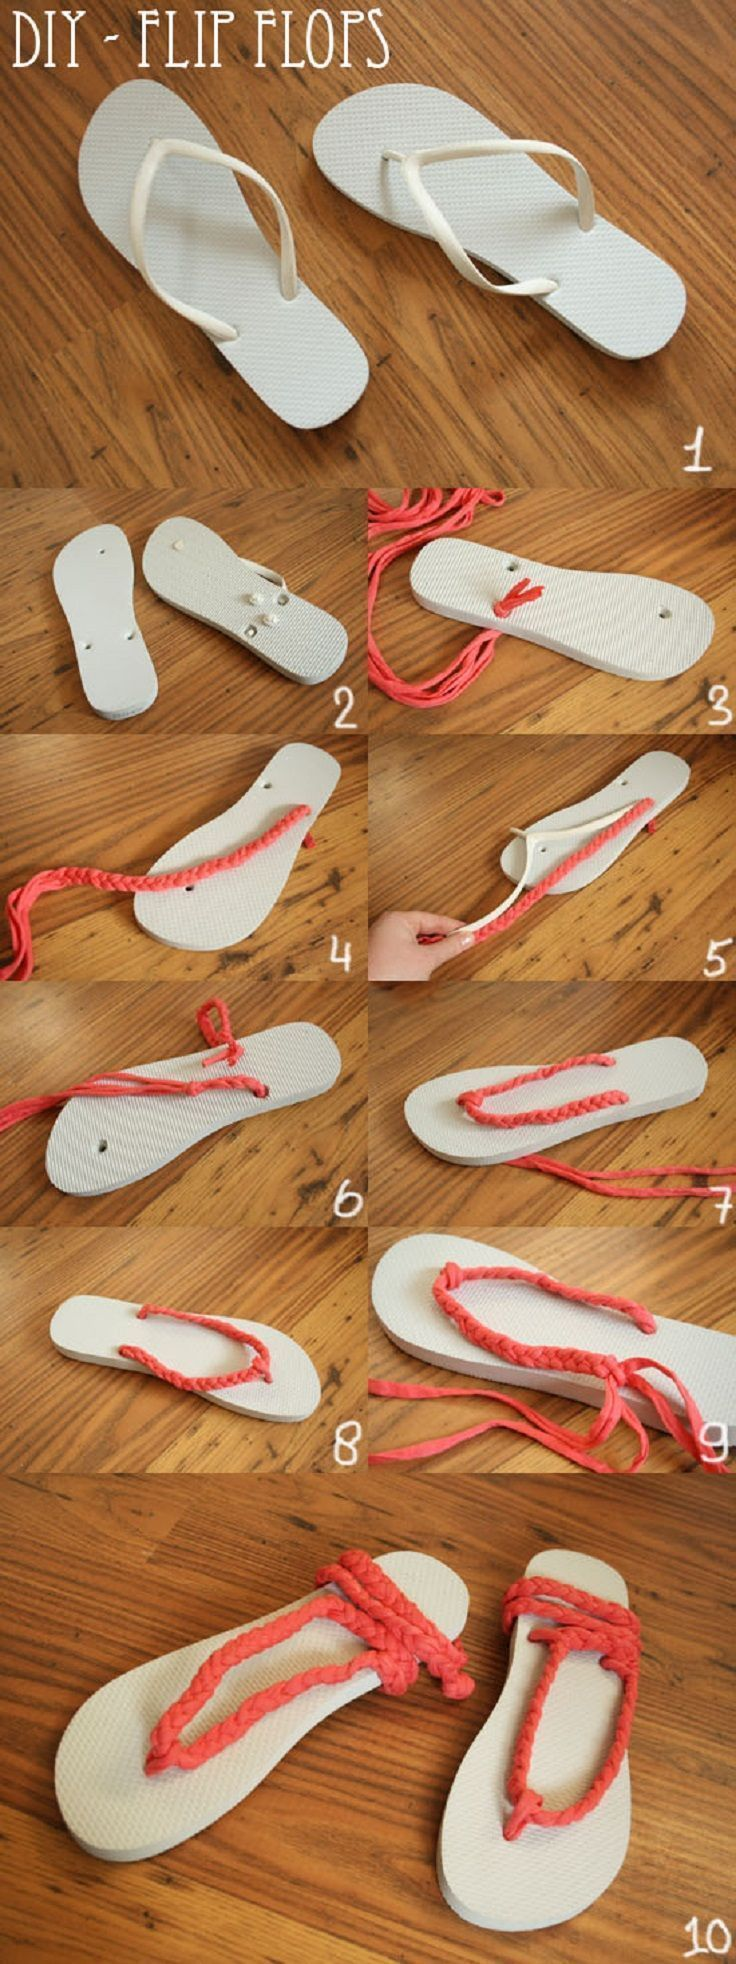 12 Easy DIY Projects You MUST Do This Summer, #10 Will Entertain Your Kids For Weeks. - http://www.lifebuzz.com/summertime-diy/